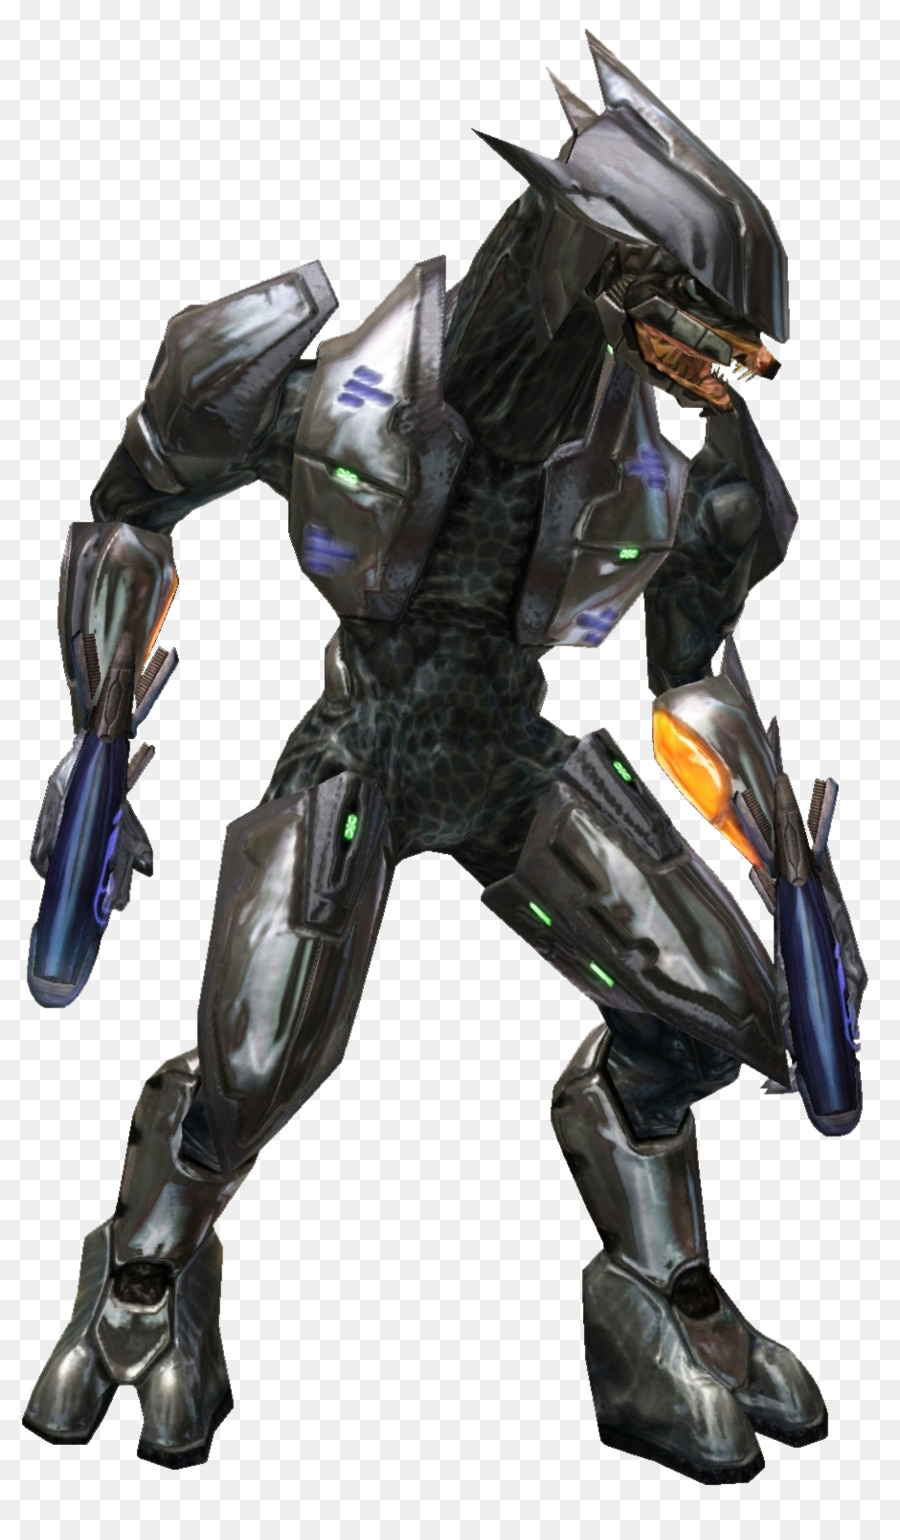 Halo Reach 2png - Halo 2 Action Figure png download - 940*1600 - Free Transparent ...